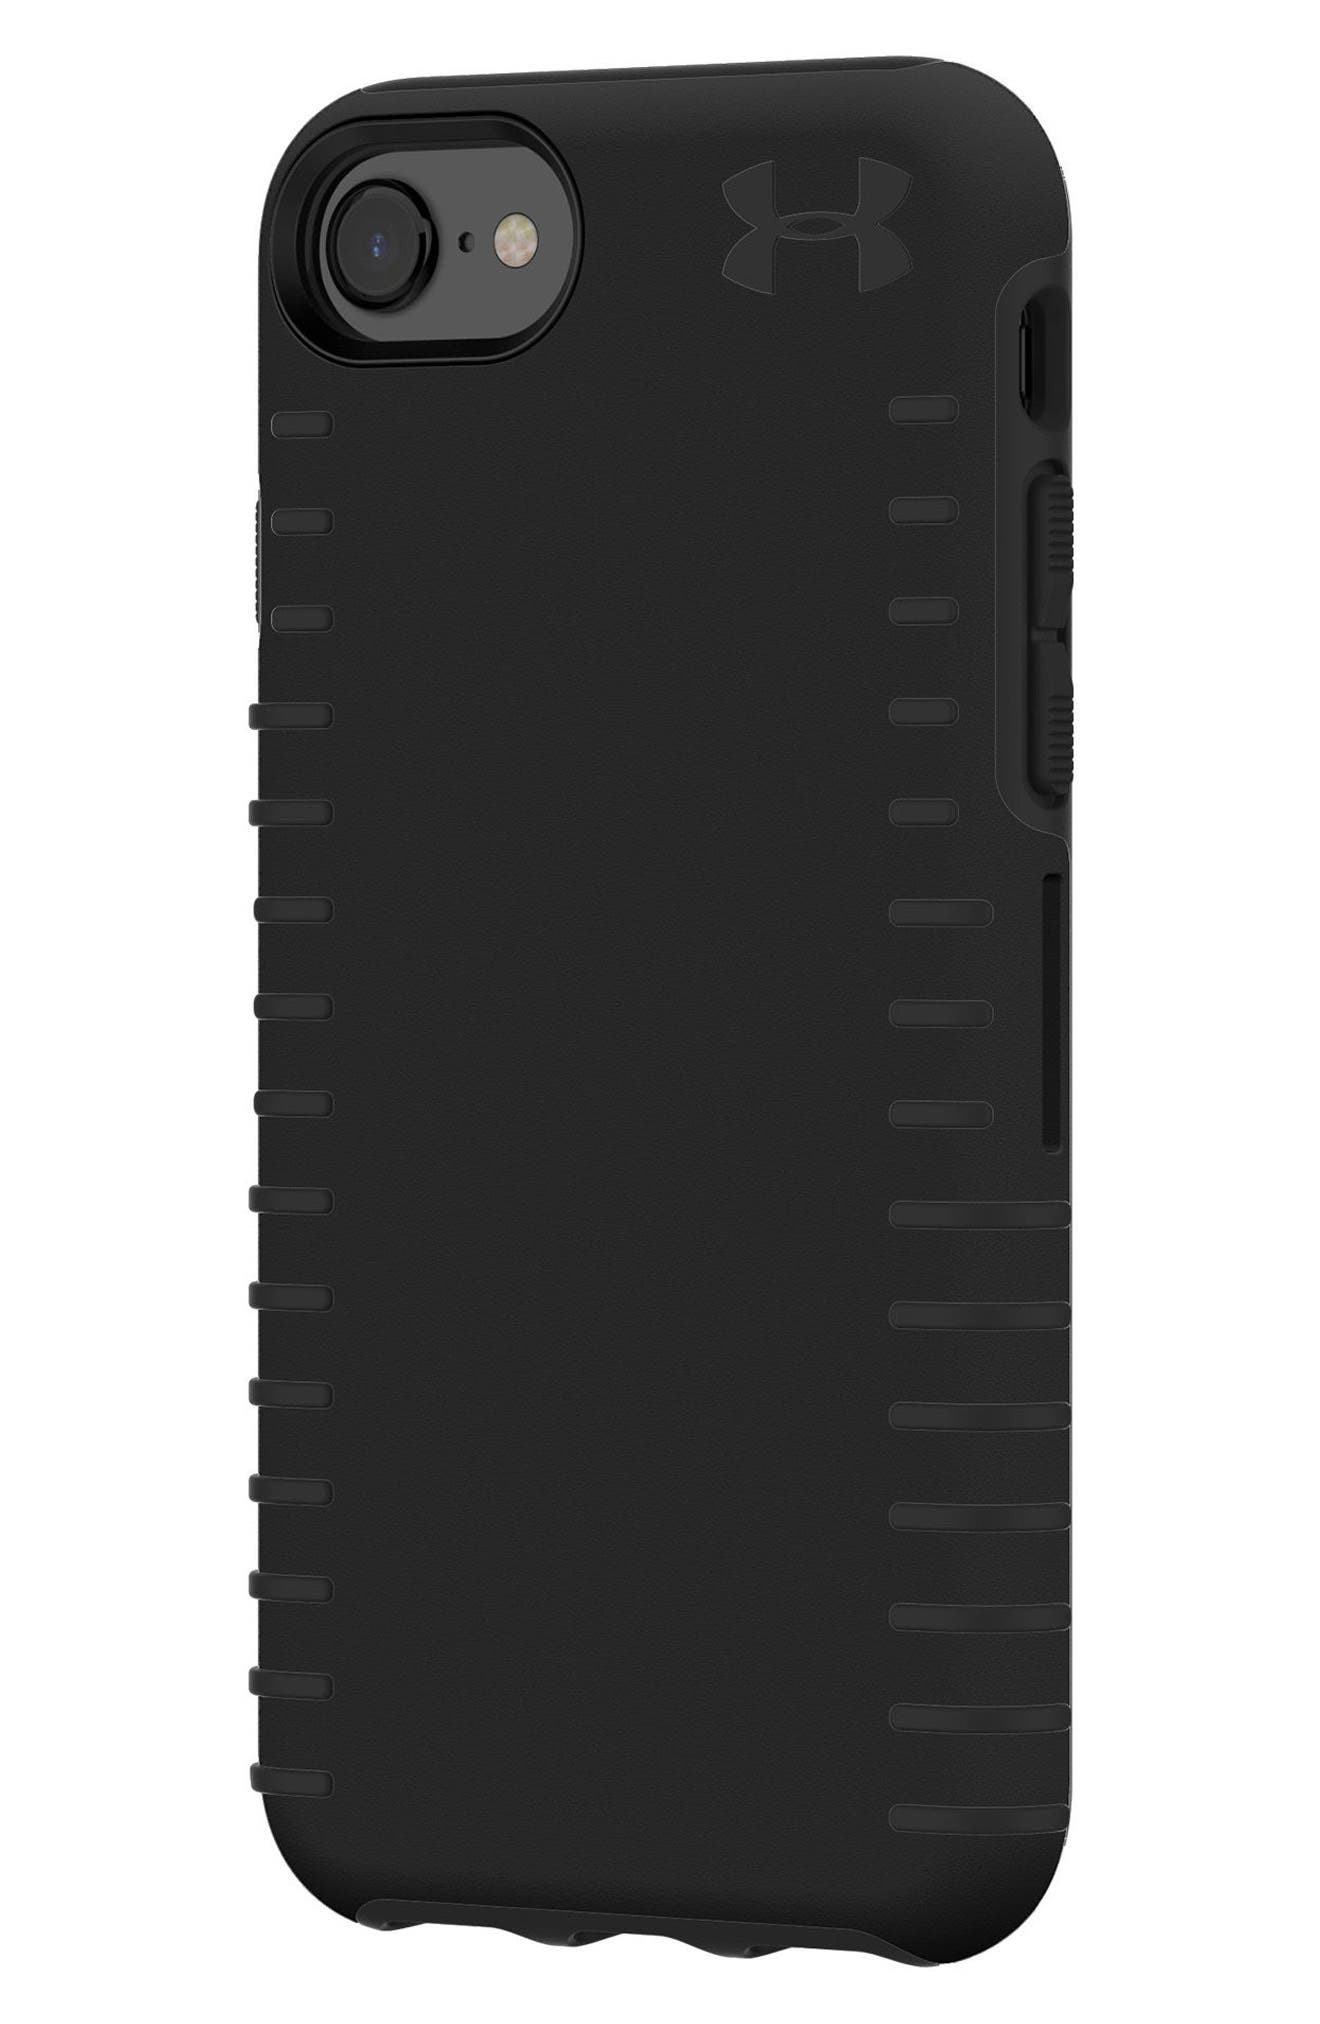 UNDER ARMOUR,                             Protect Grip iPhone 6/6s/7/8 Case,                             Alternate thumbnail 3, color,                             001